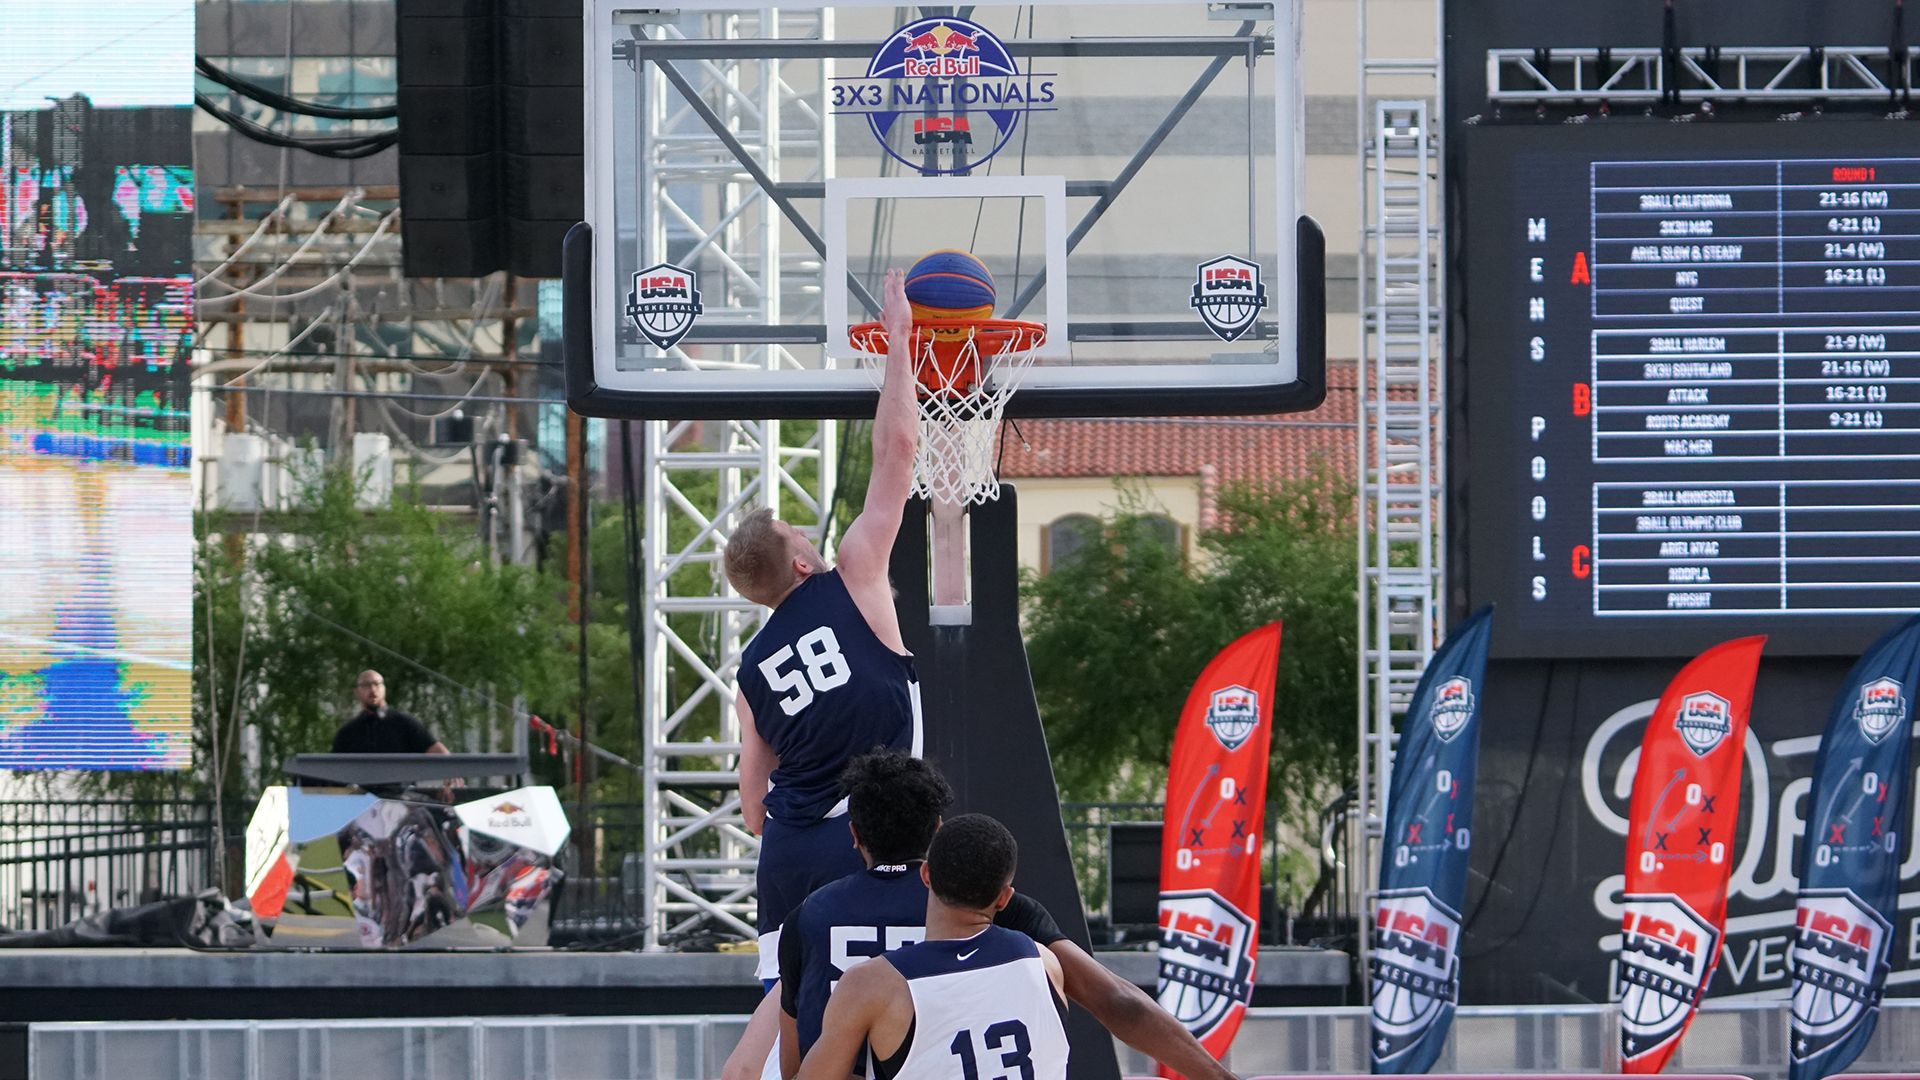 bcfeeaa3c Red Bull USA Basketball Men s 3x3 Nationals Sees Three Teams Unbeaten After  First Day of Competition